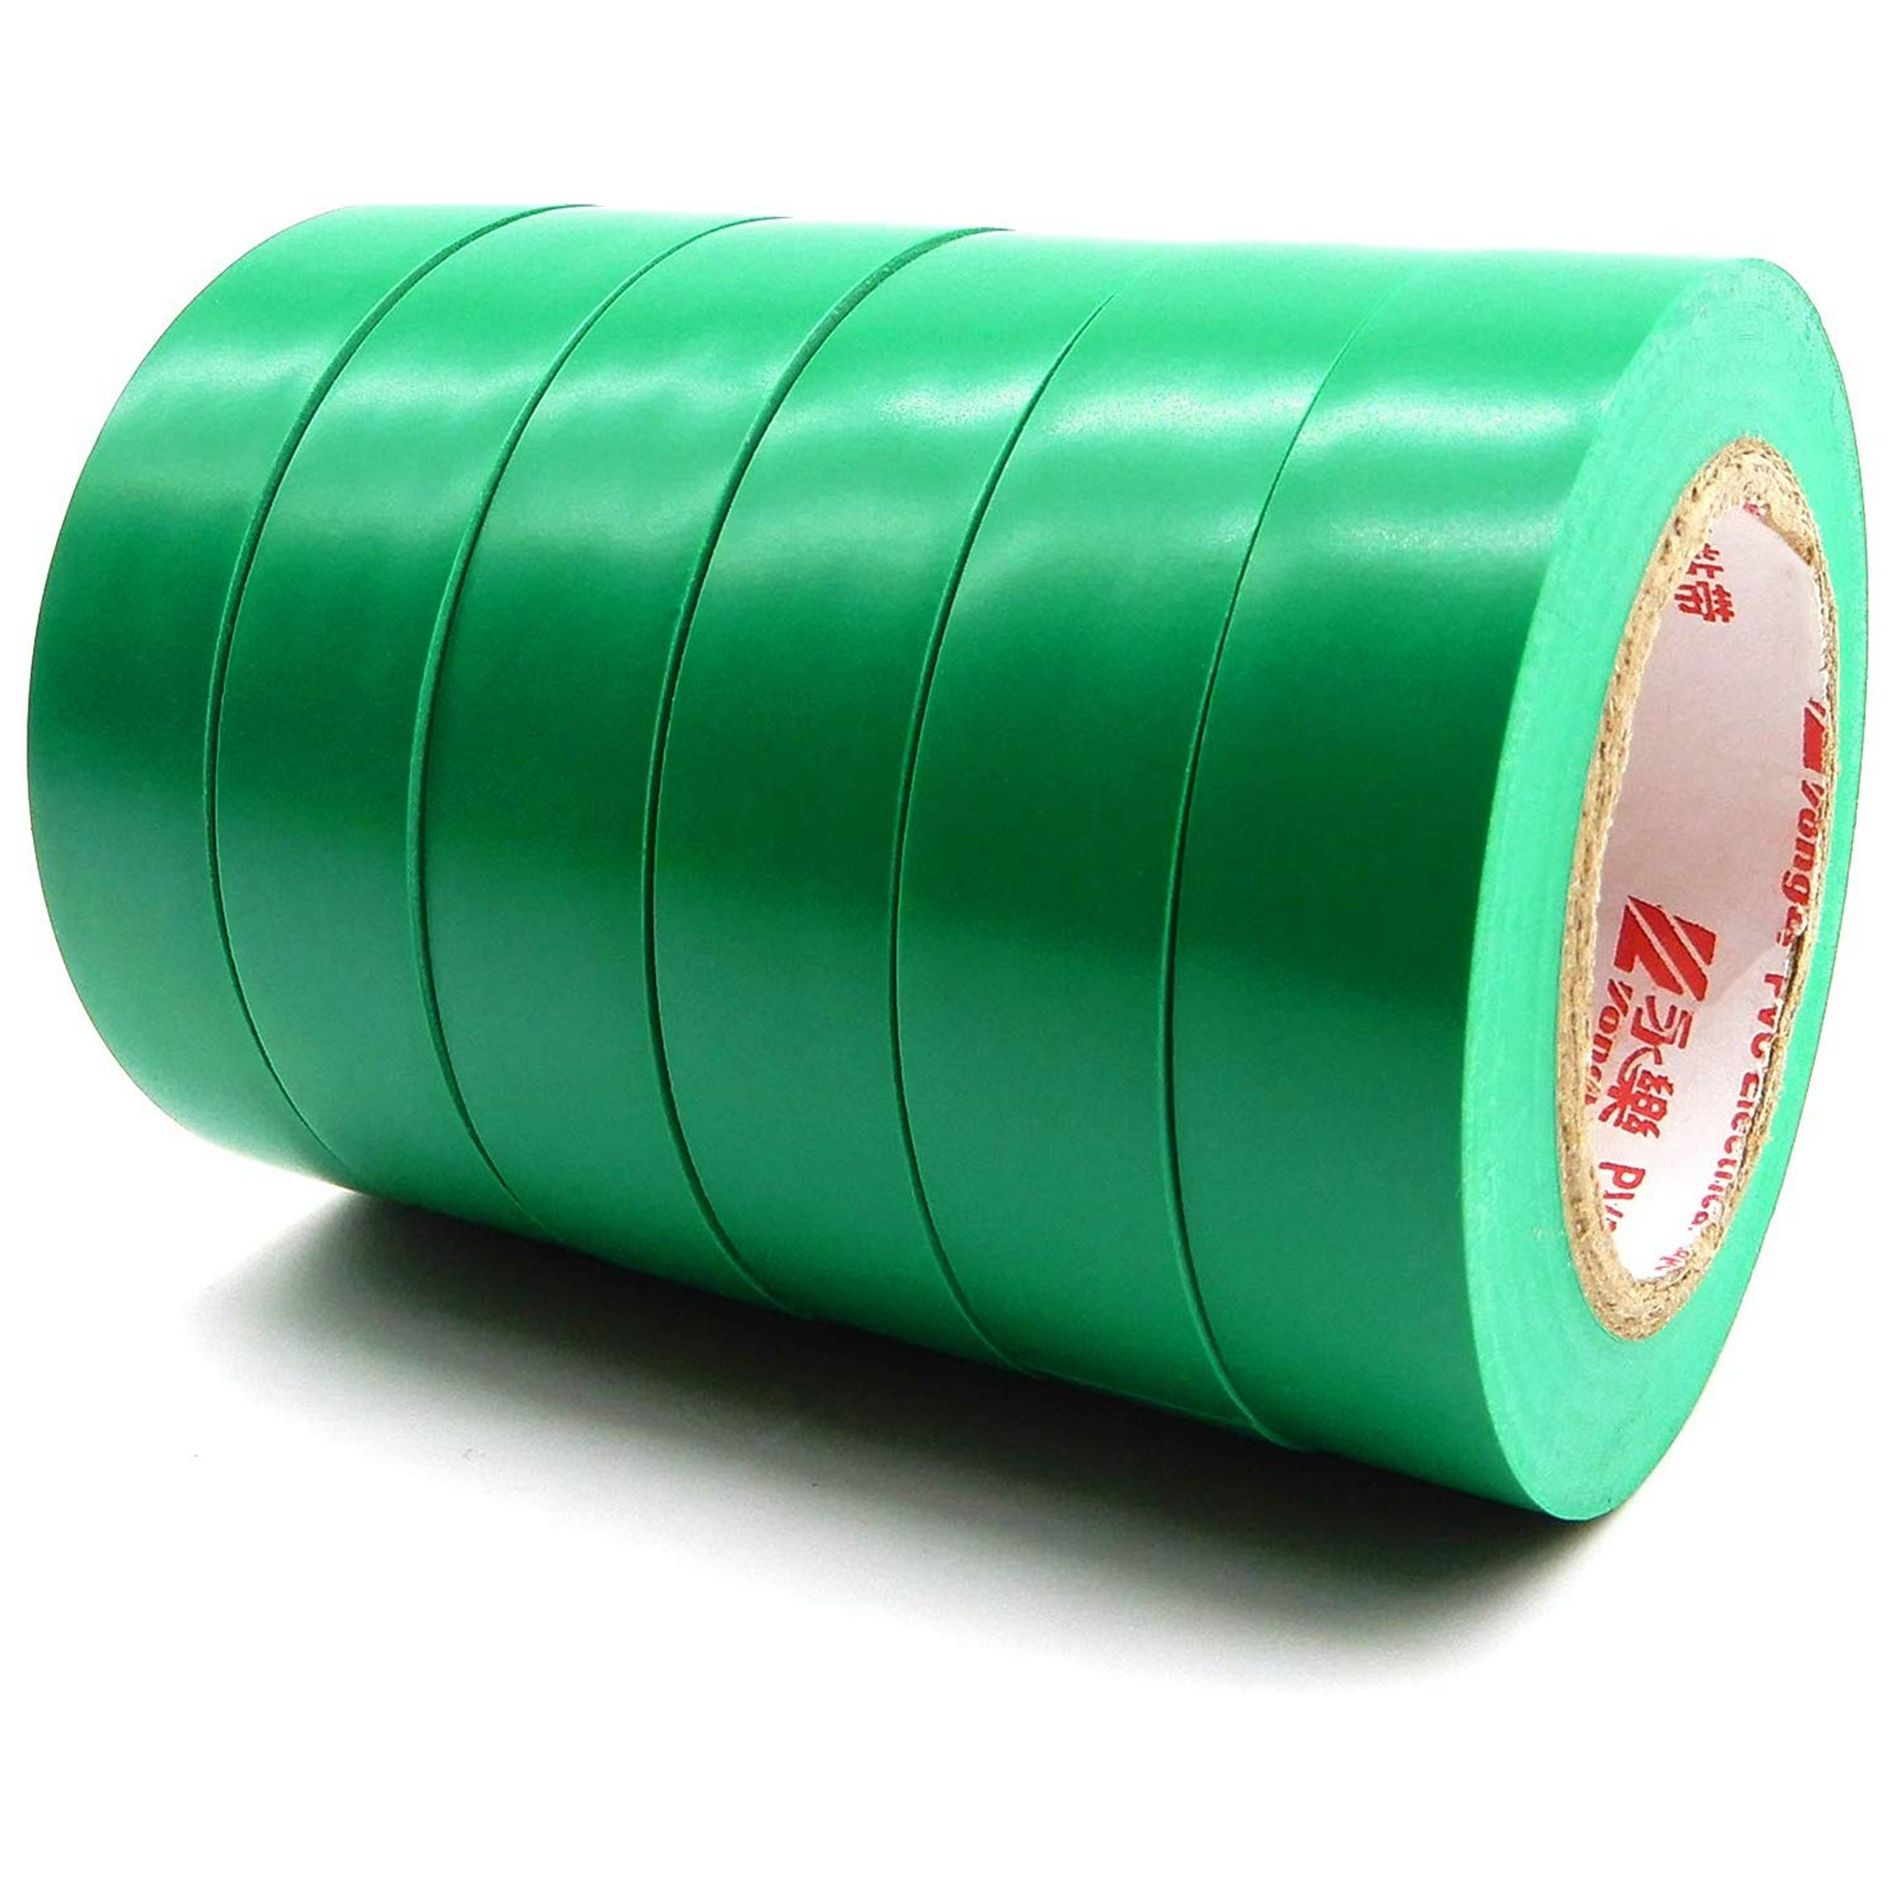 Hampool Electrical Insulated High Performance 0.15mm Thickness Pvc Tape Roll